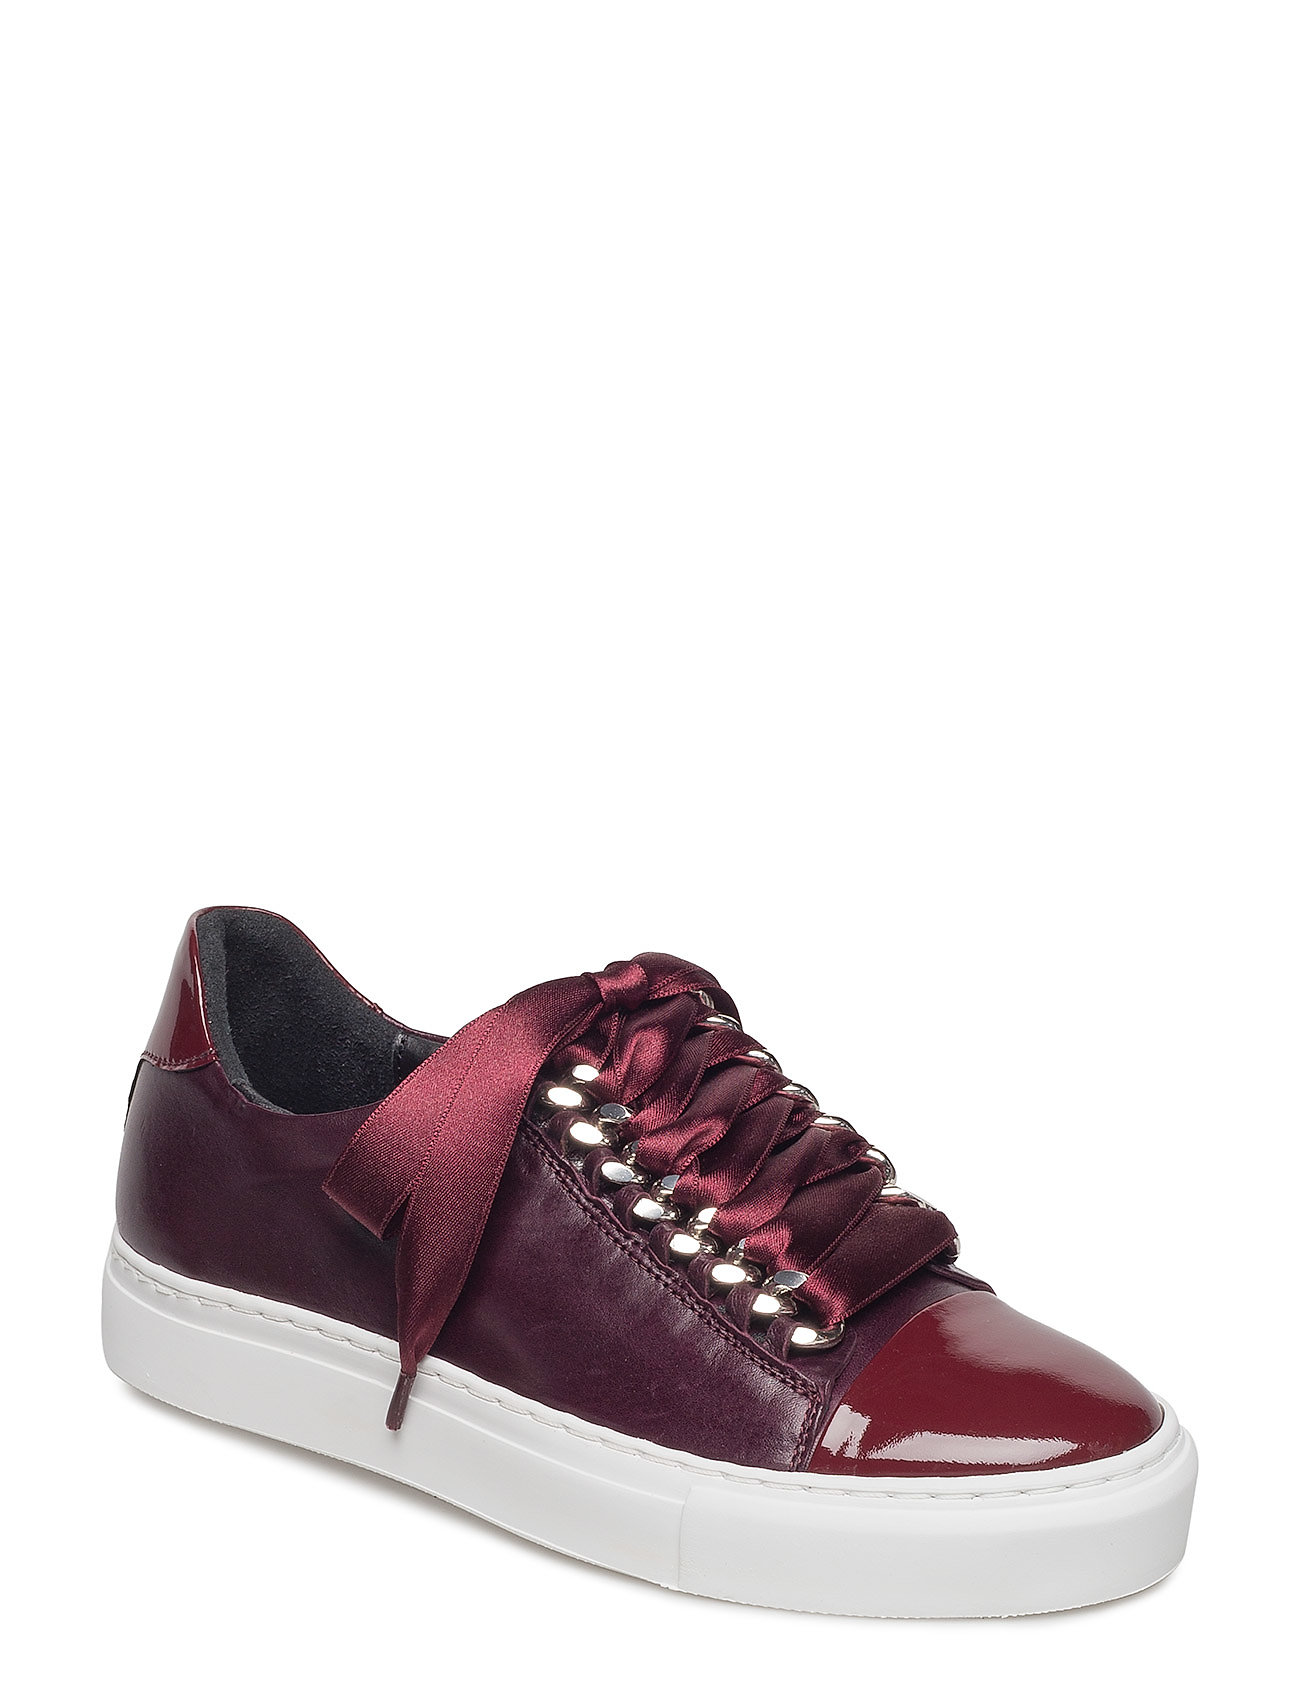 Billi Bi SHOES - BORDO 518 PAT./BORDO TEQ. 278